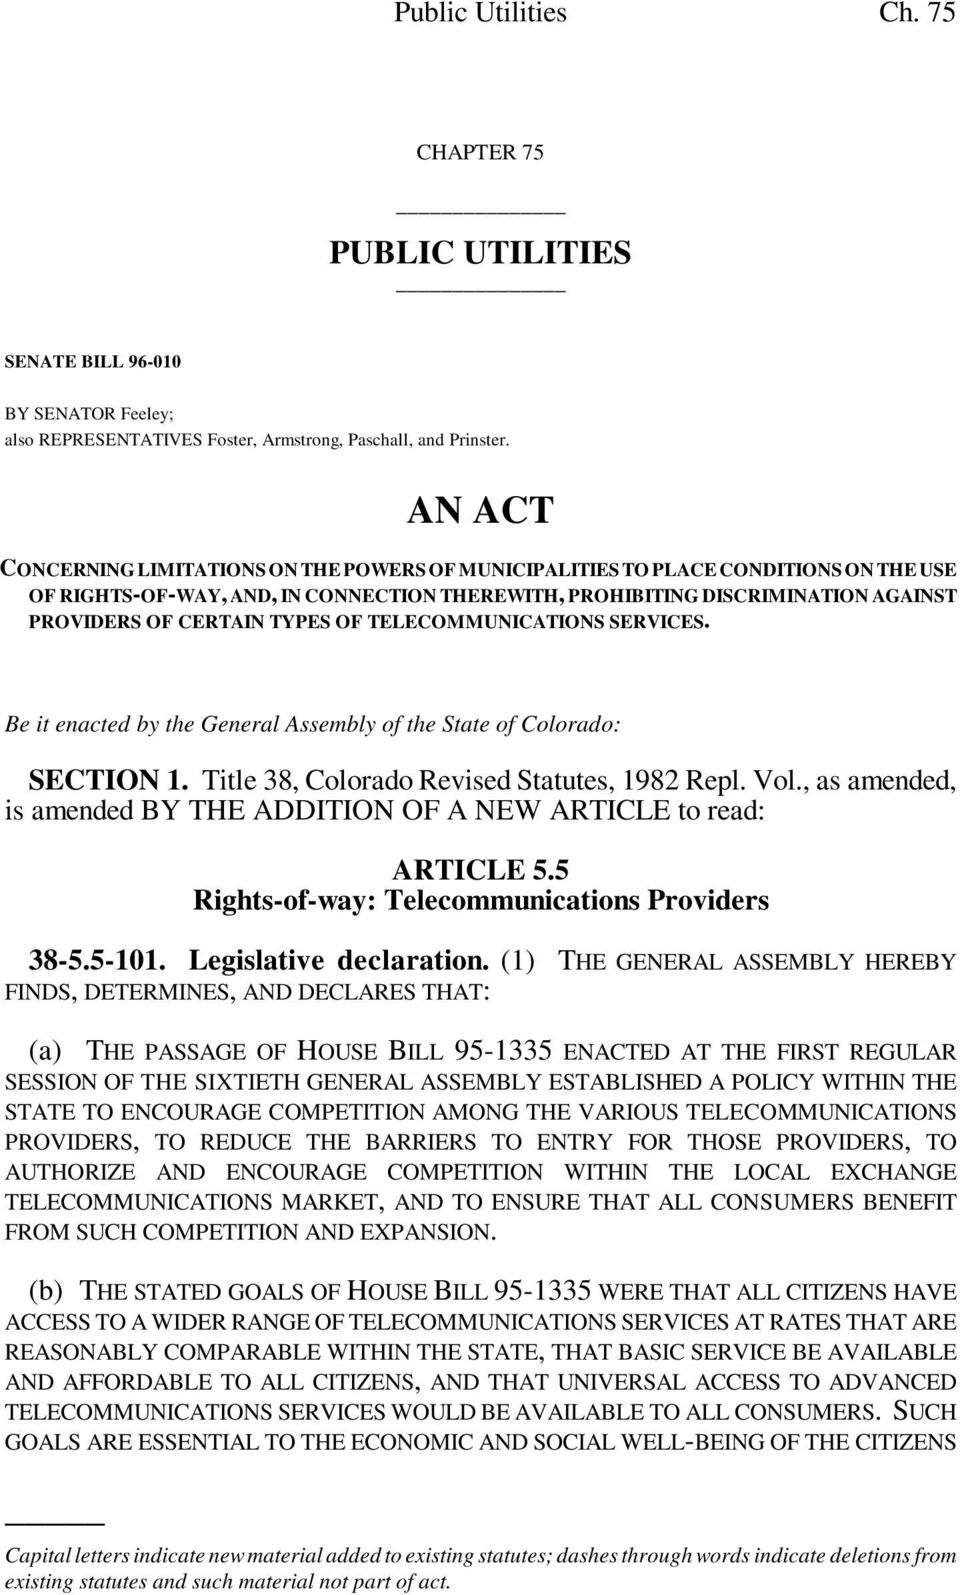 TYPES OF TELECOMMUNICATIONS SERVICES. Be it enacted by the General Assembly of the State of Colorado: SECTION 1. Title 38, Colorado Revised Statutes, 1982 Repl. Vol.